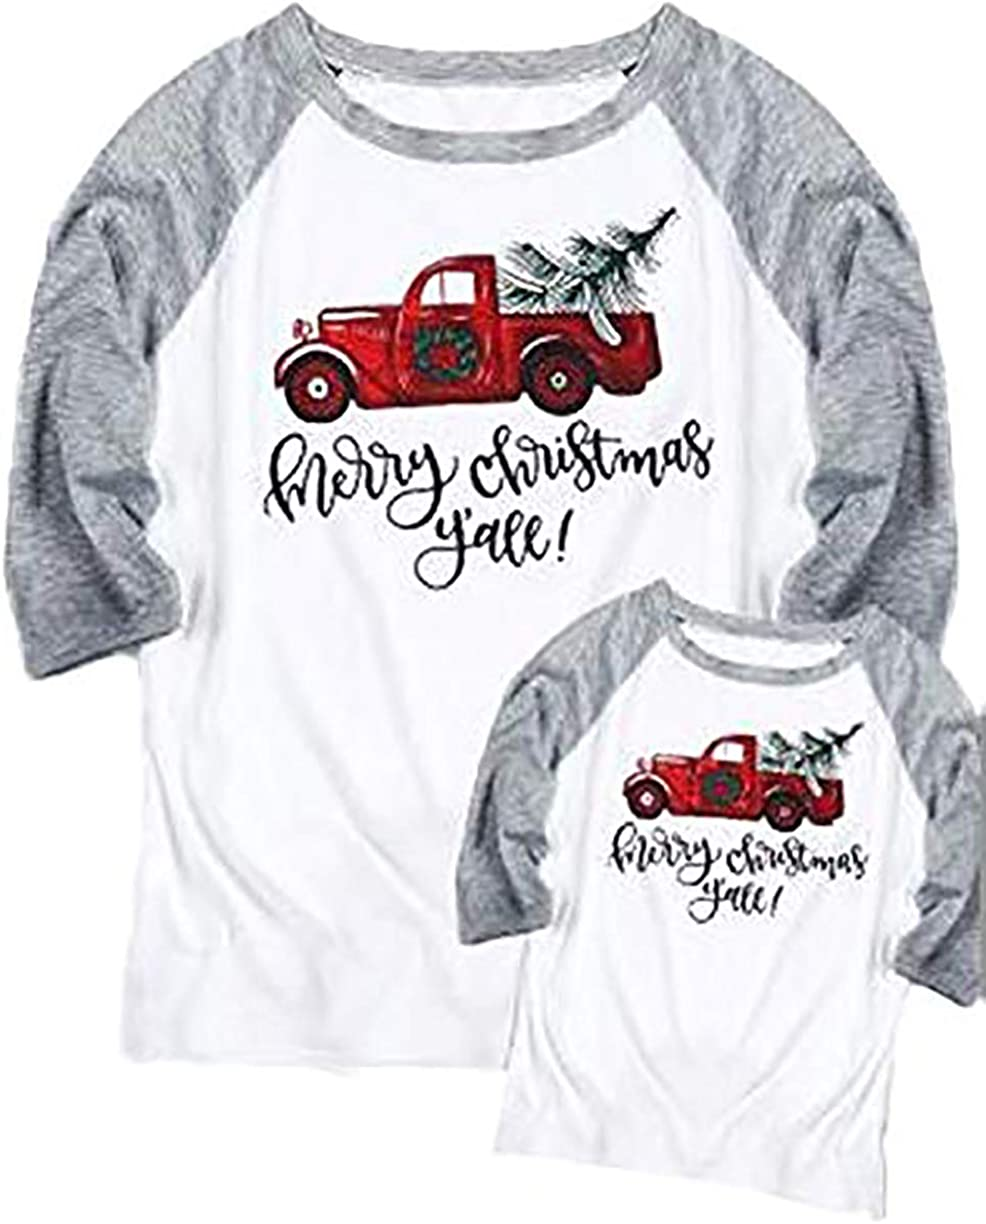 Mommy and Me Merry Christmas Y'all Baseball T-Shirt Women 3/4 Sleeve Family Matching Tee Tops